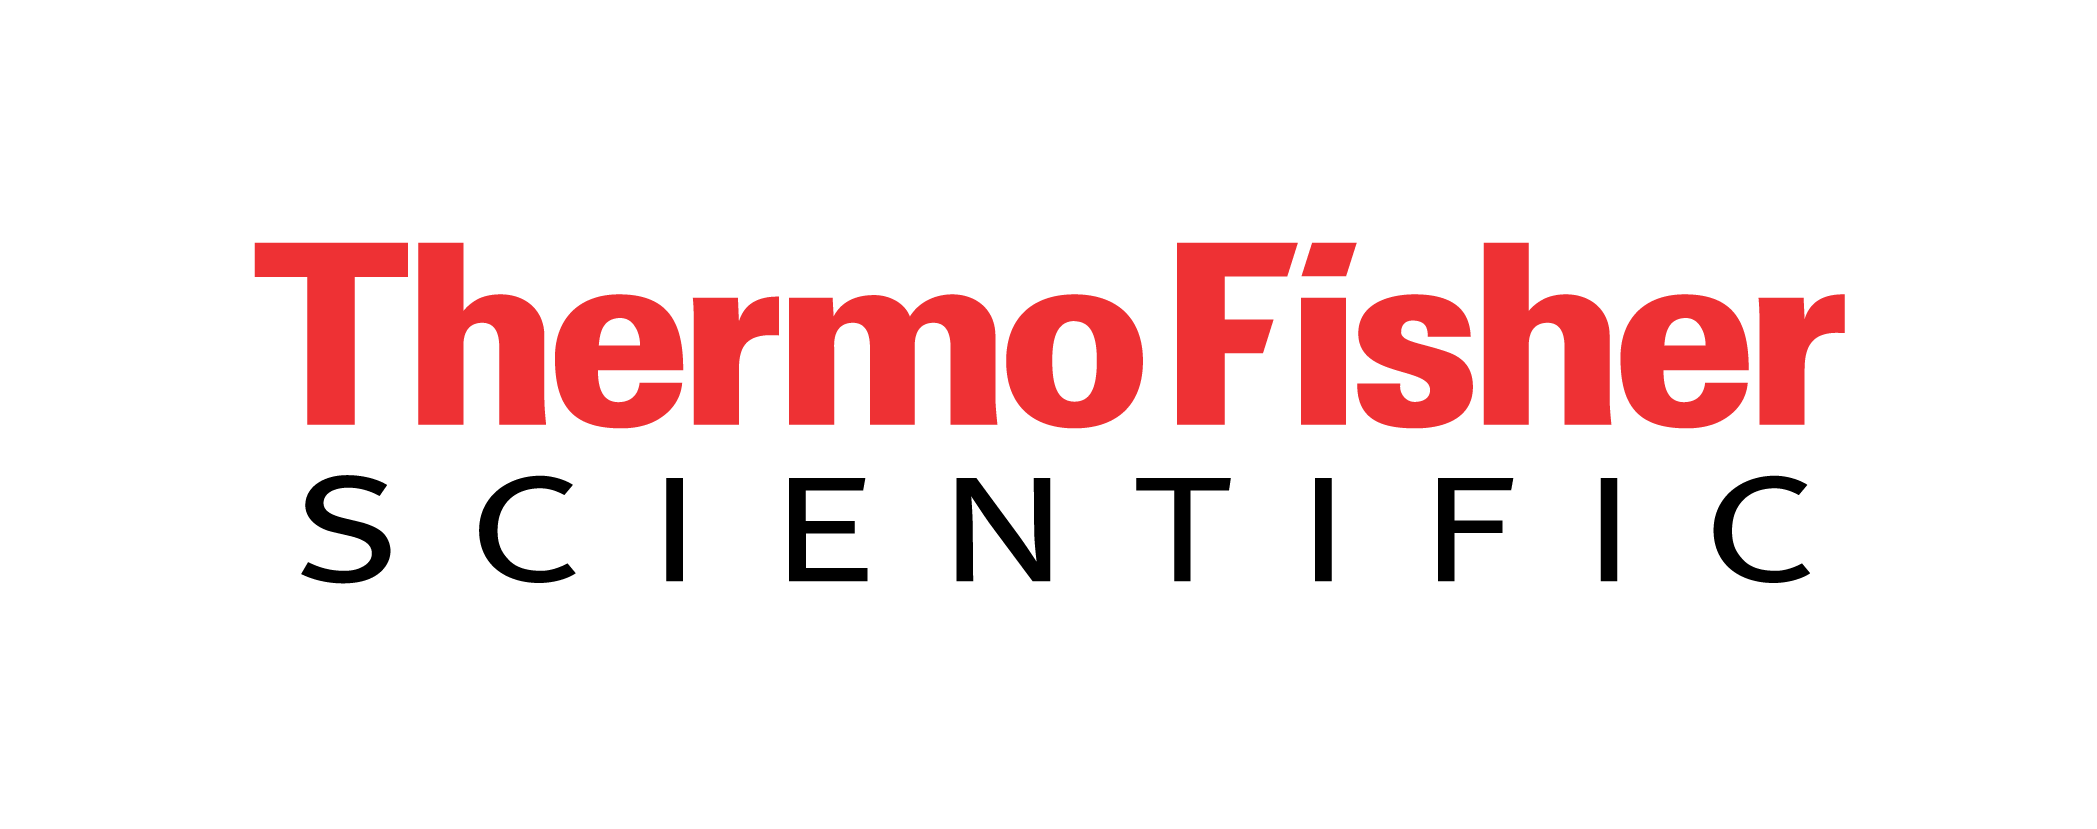 TFS-White-BG_Thermo Fisher Scientific - Red - Black